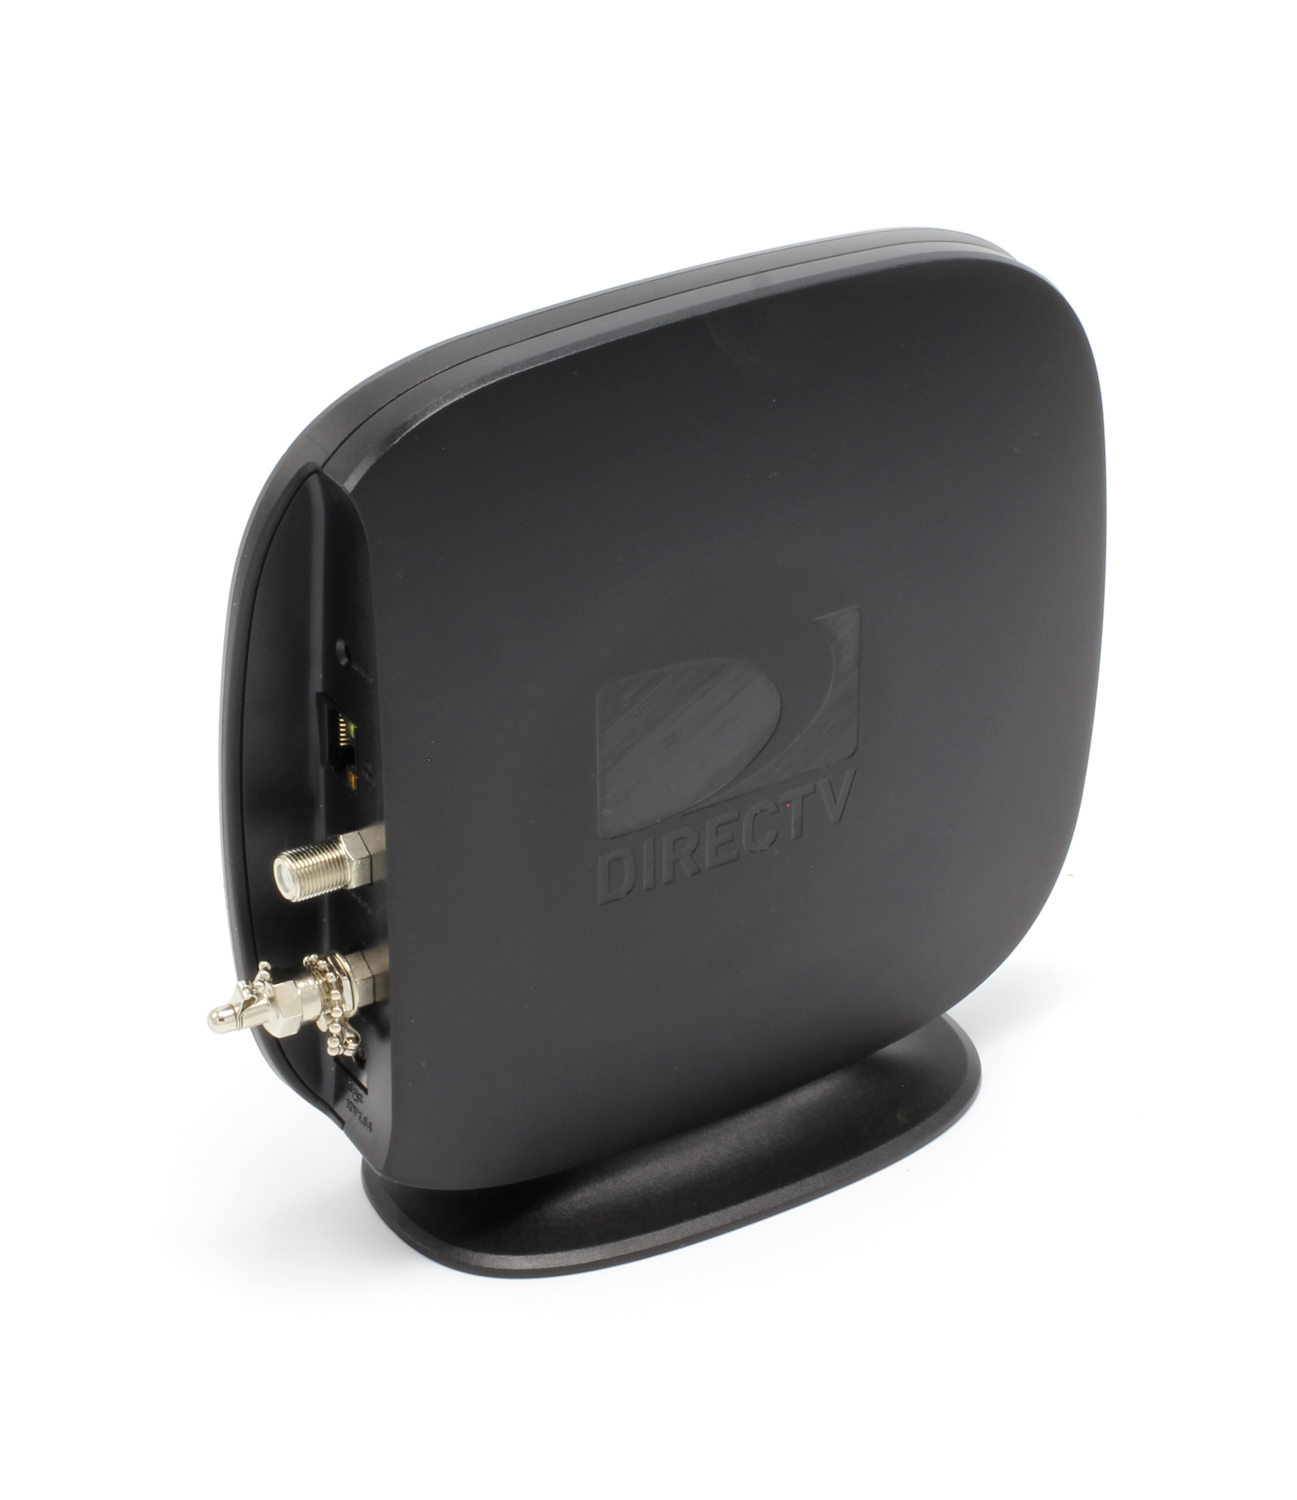 DIRECTV Wireless Bridge HD Client Bridge with Complete Kit by THE CIMPLE CO by THE CIMPLE CO